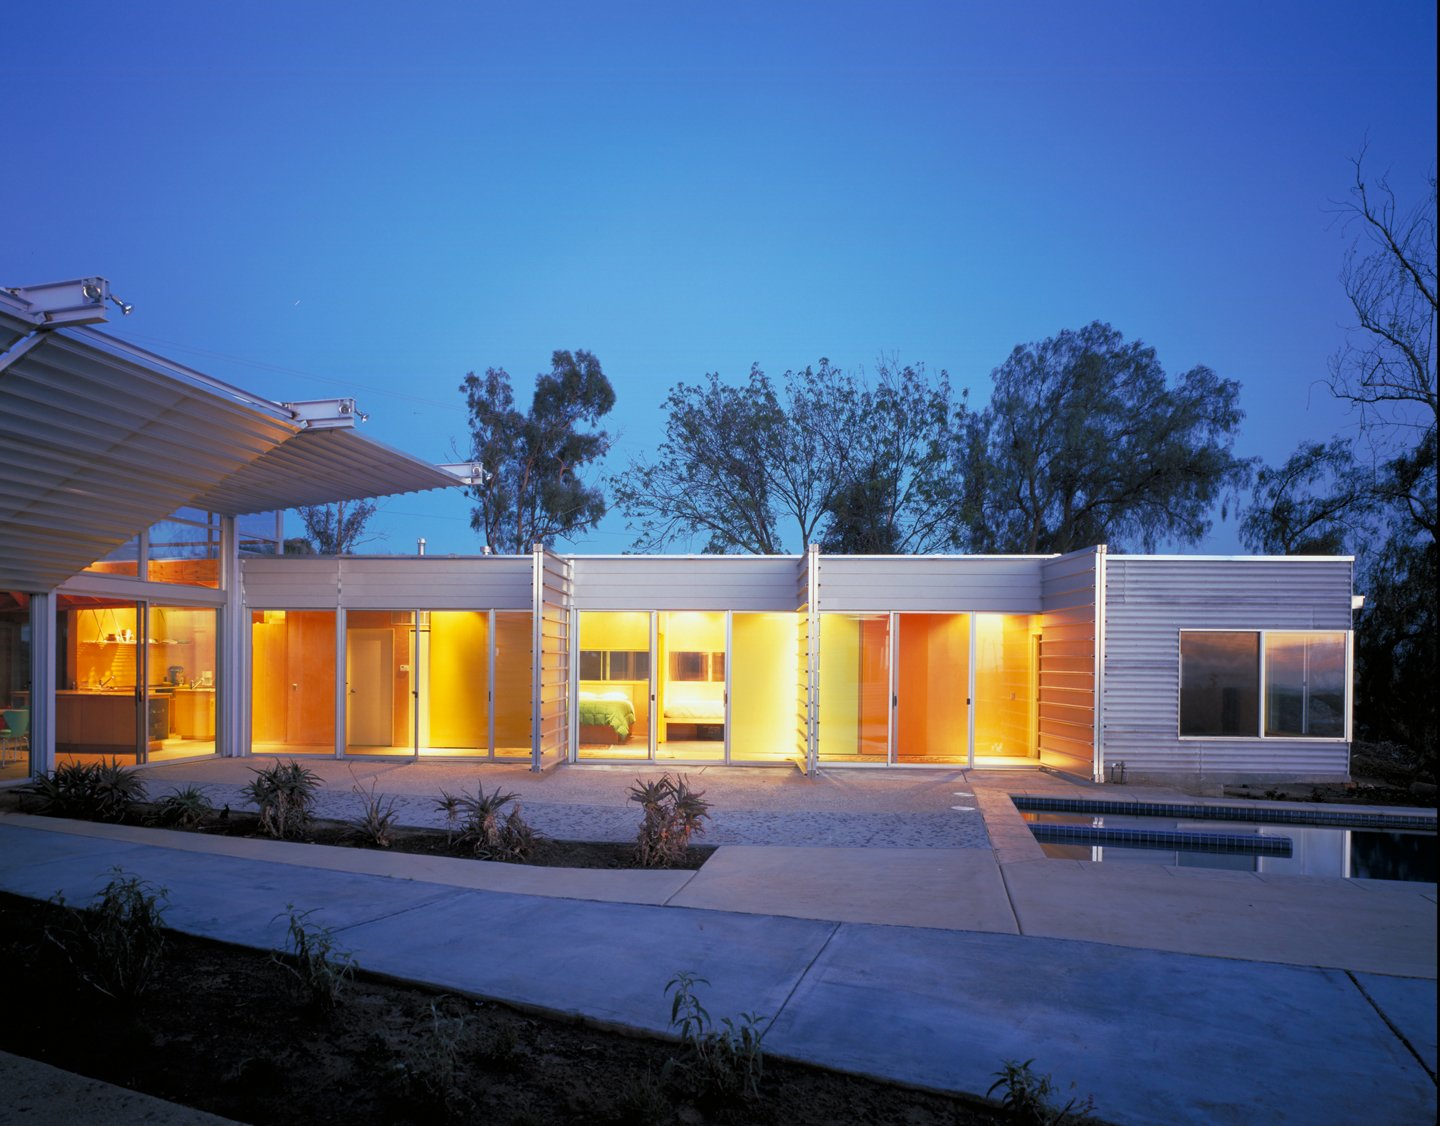 #exterior #outside #outdoor #landscape #eco #green #sustainable #ValleyCenter #California #KevinDalyArchitects